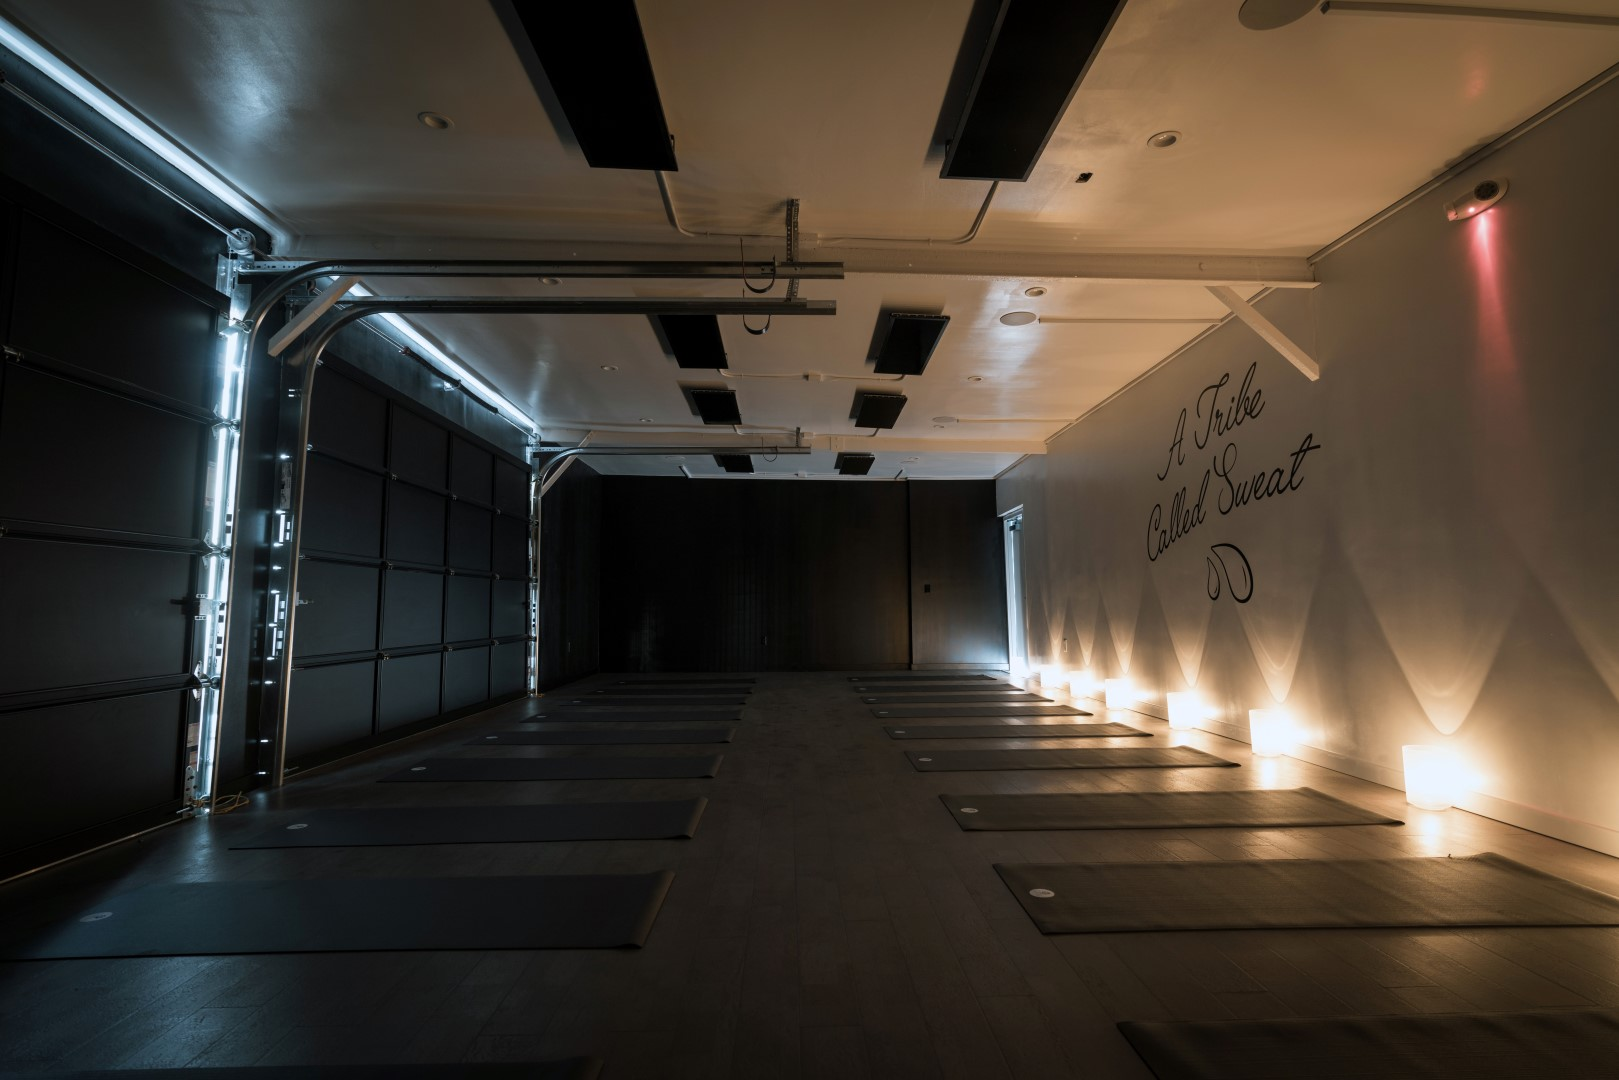 Y7 Yoga Studio (Los Angeles, California)